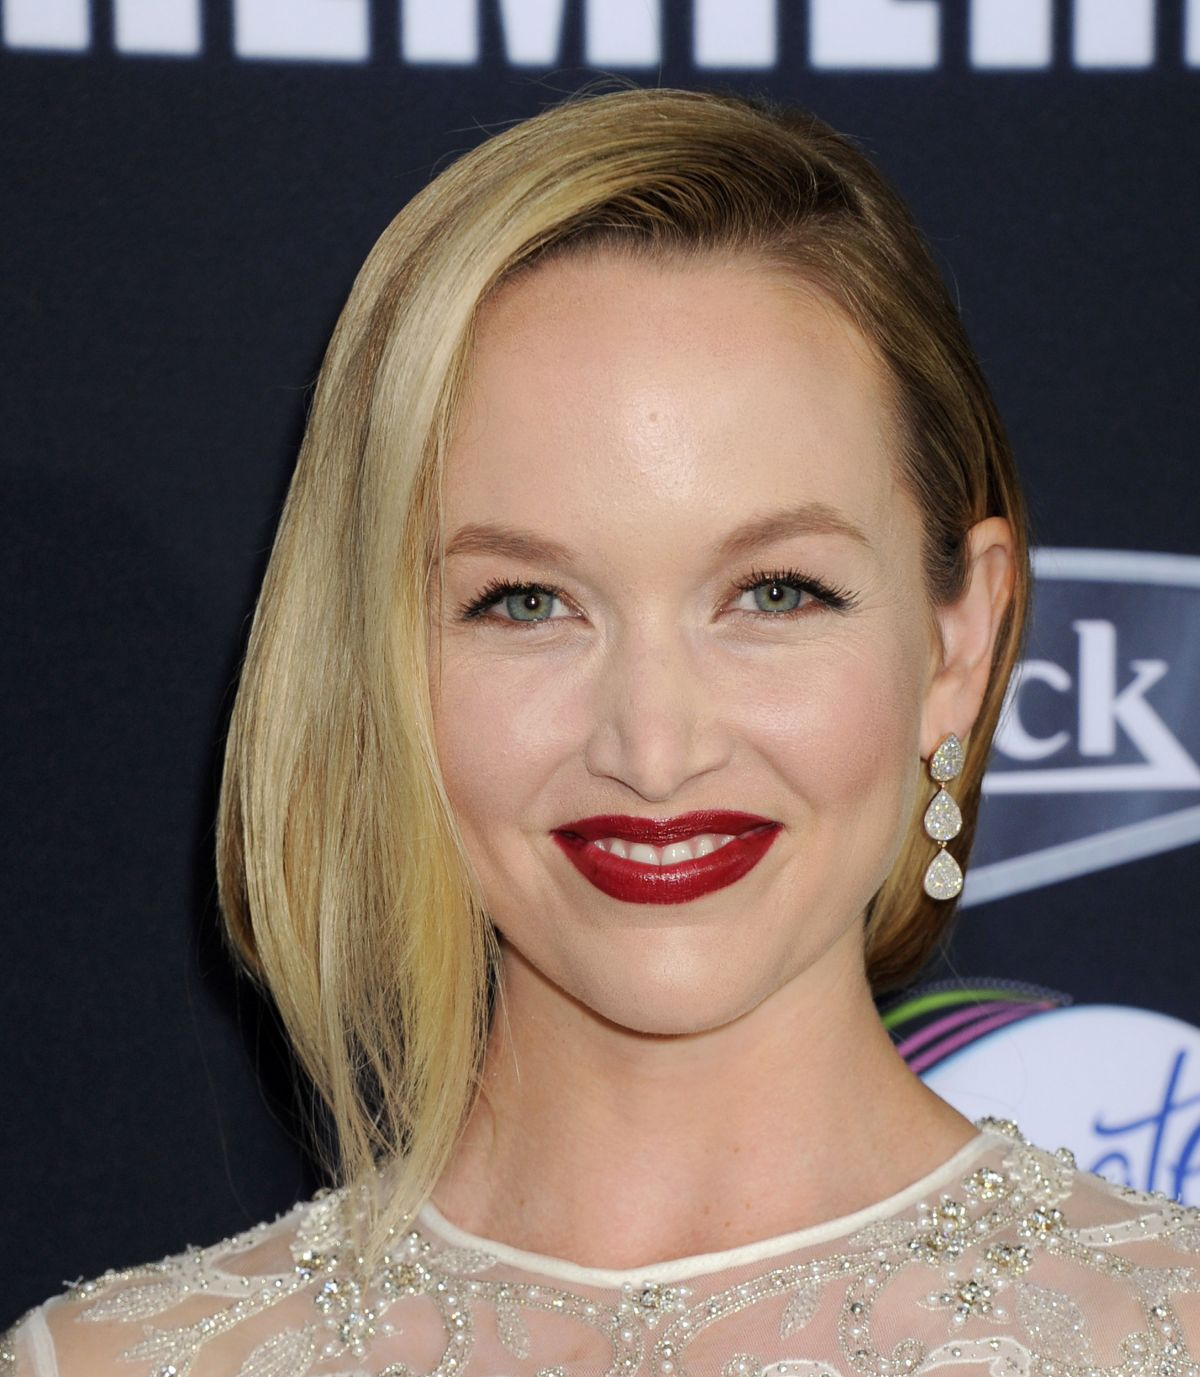 KELLEY JAKLE at Pitch Perfect 2 Premiere in Los Angeles ...